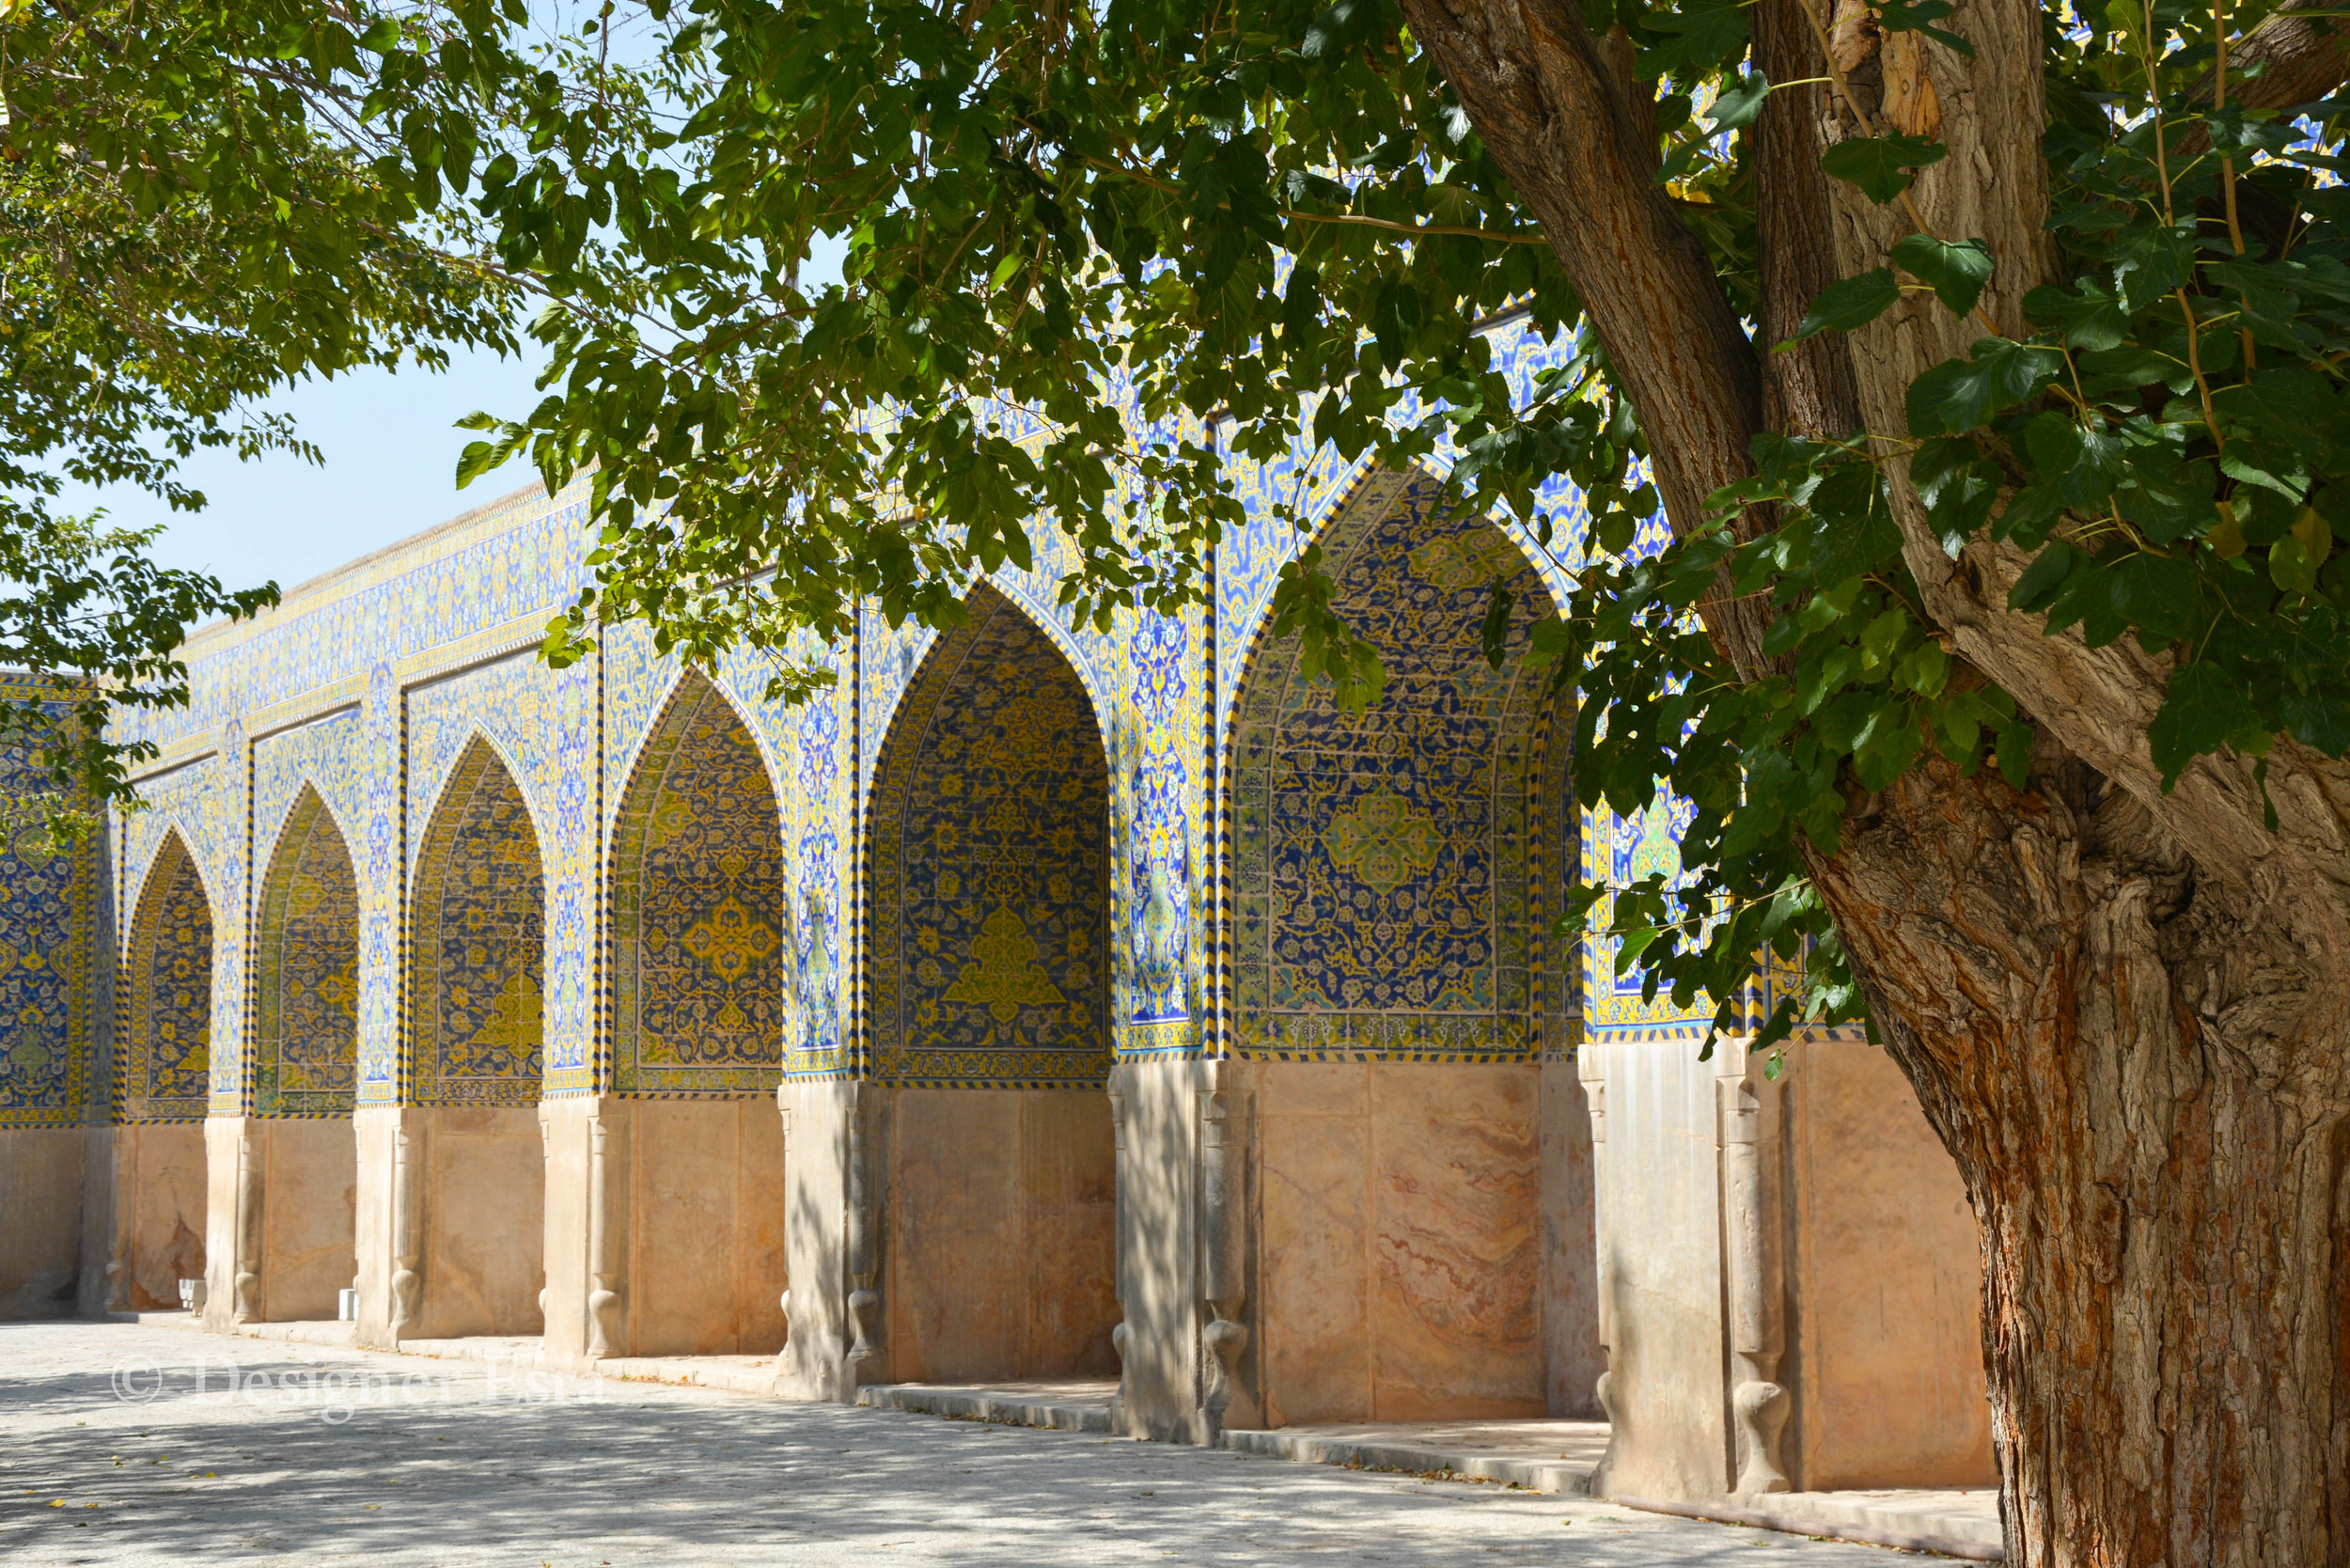 Arches covered with Biomorphic patterns in Shah (Imam-i) Mosque